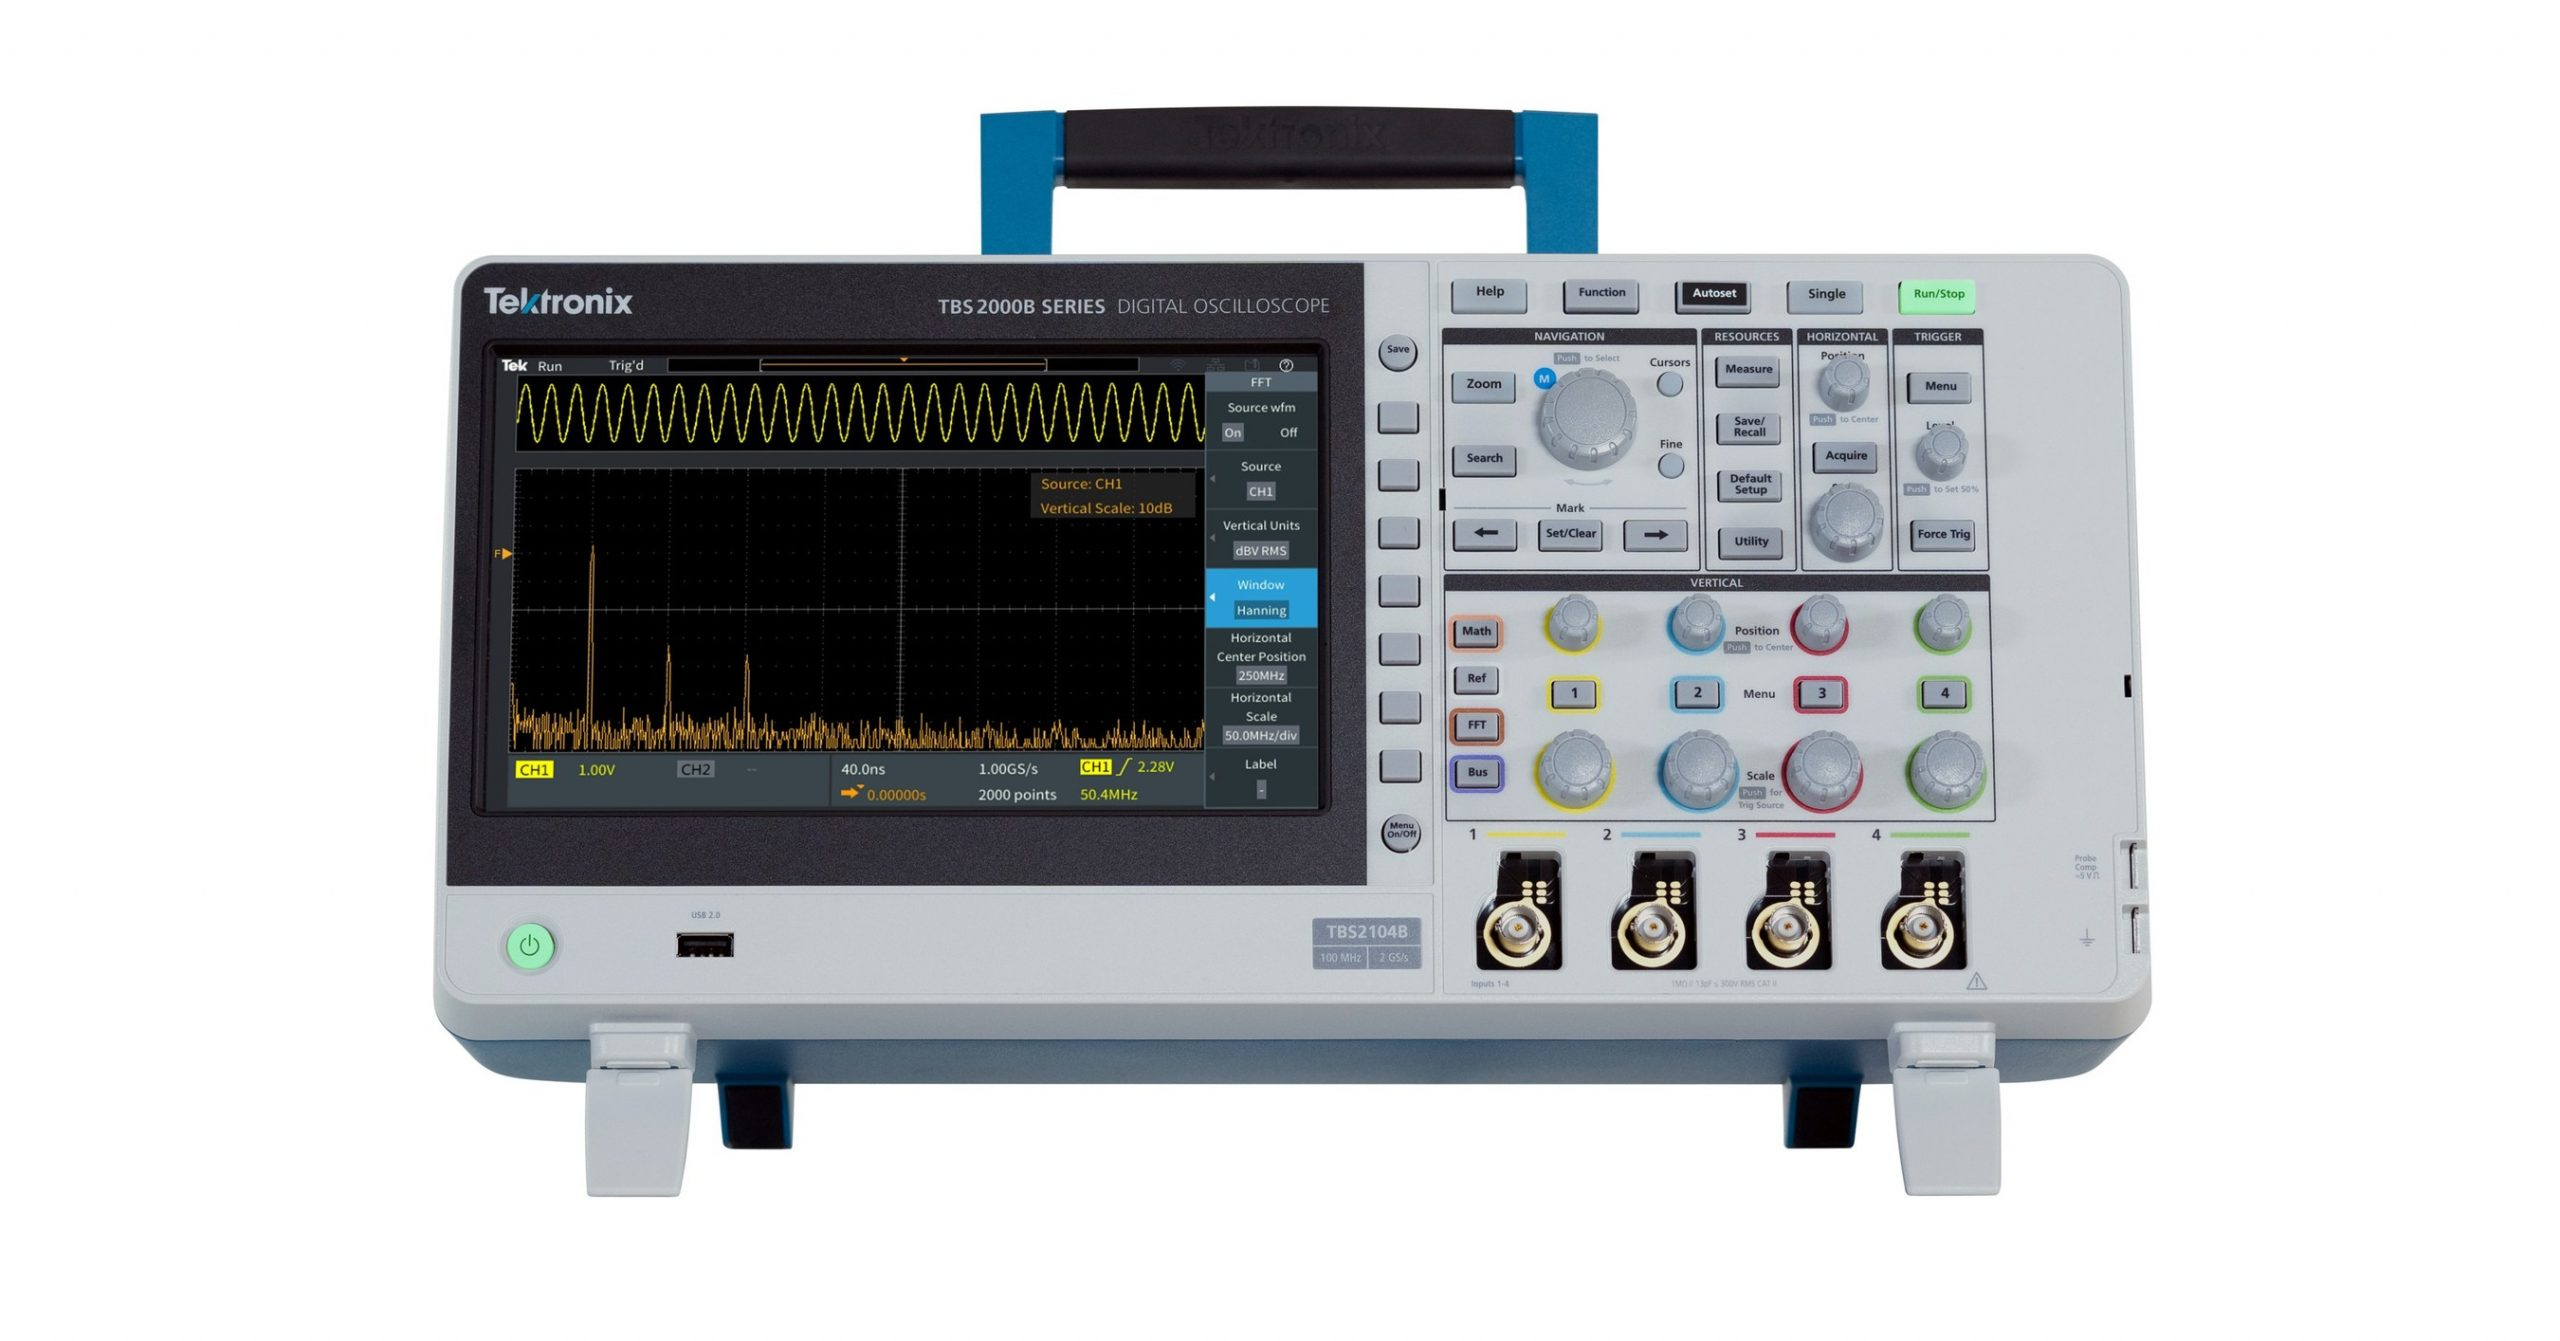 Farnell offers 15% off new Tektronix DSO